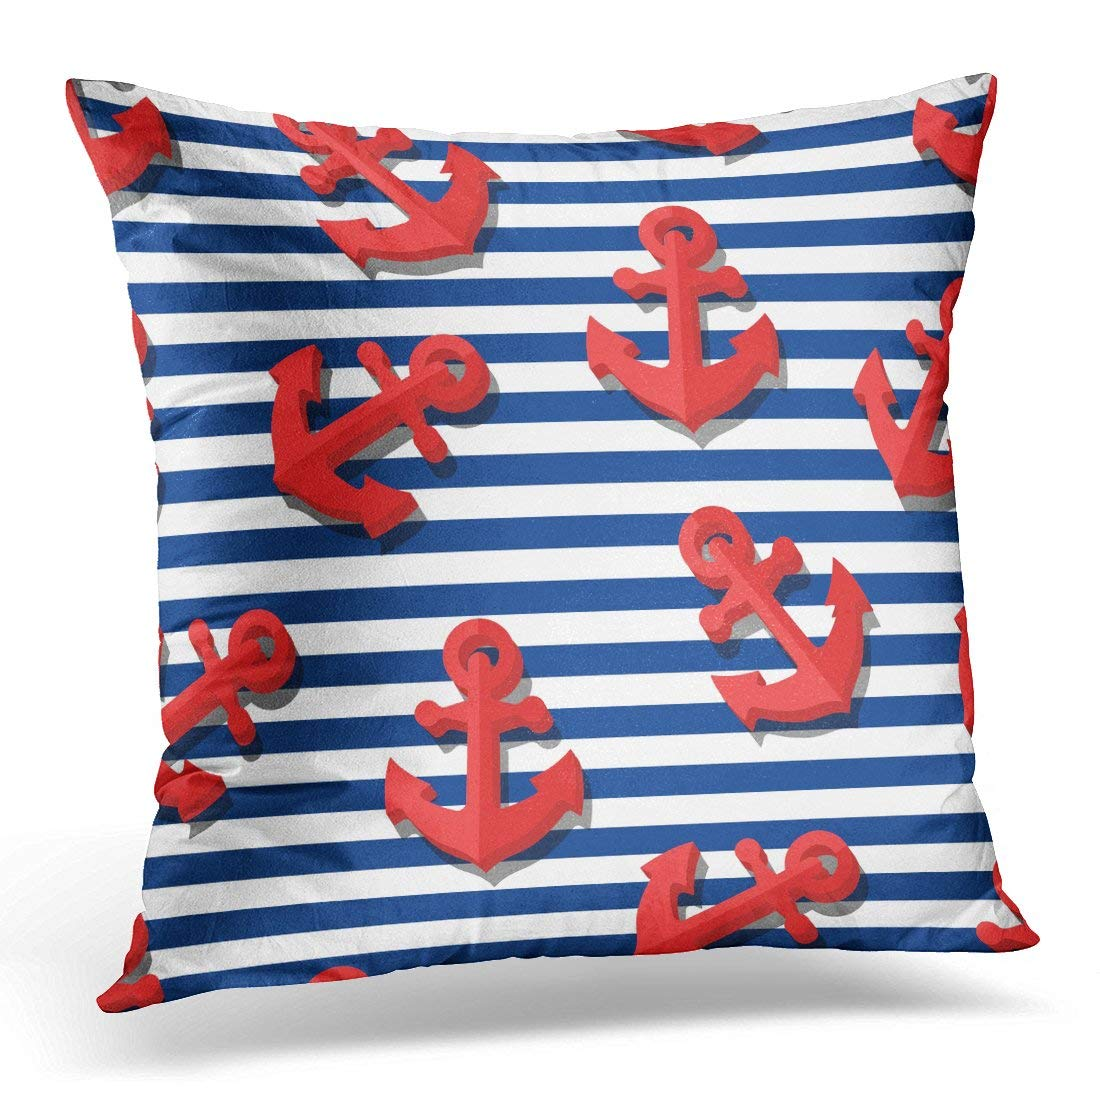 USART Black Kids with 3D Red Anchors and Blue Navy Stripes Summer Marine Striped Design for Flat Symbol White Pillow Case Pillow Cover 20x20 inch